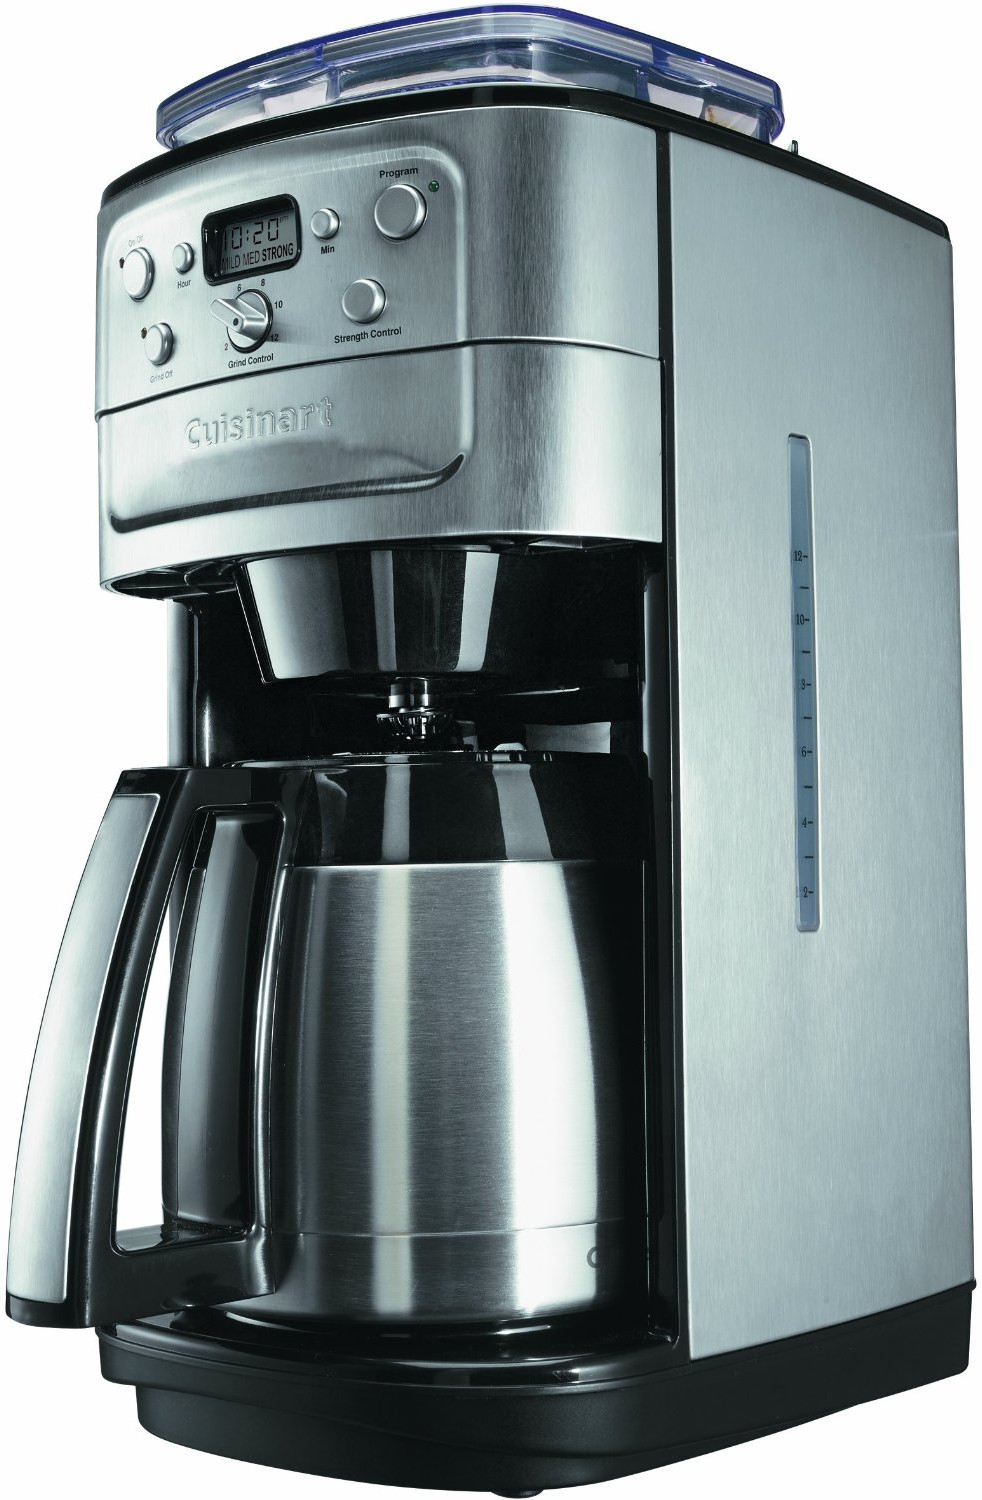 Image of Cuisinart DGC900BCU Grind and Brew Plus